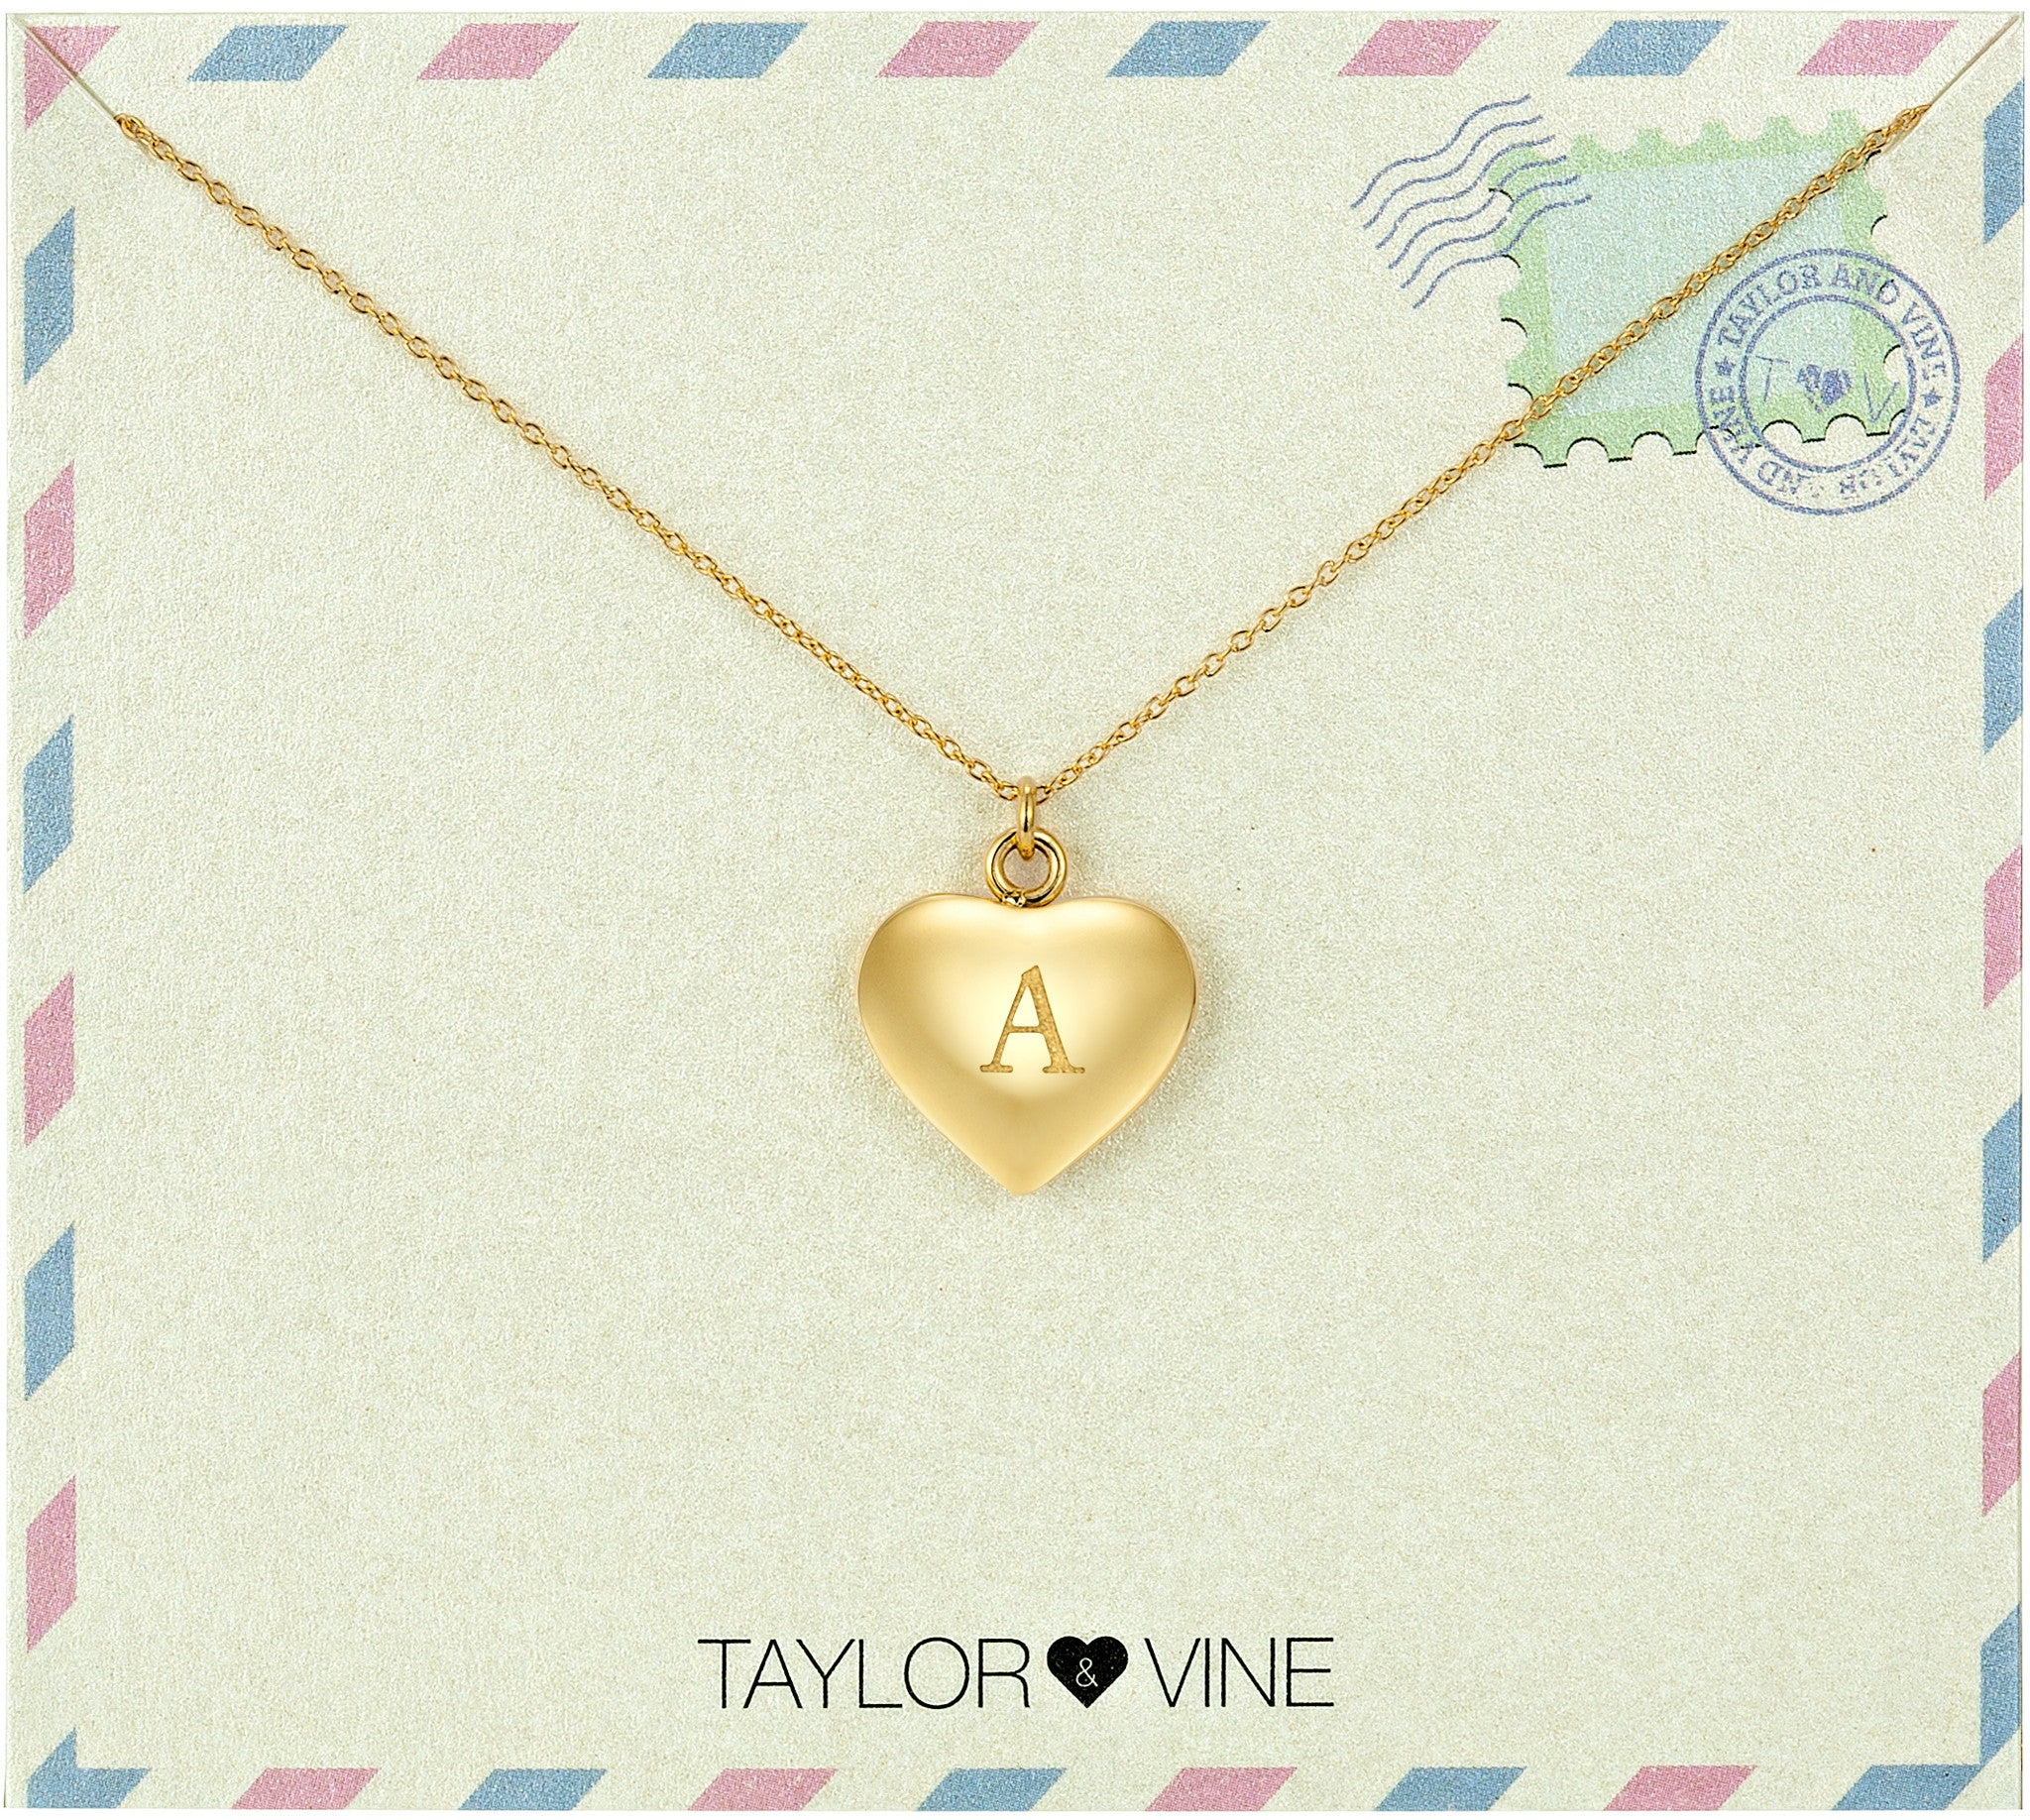 Love letter heart pendant necklace engraved i love you gold taylor and vine love letter a heart pendant gold necklace engraved i love you aloadofball Image collections